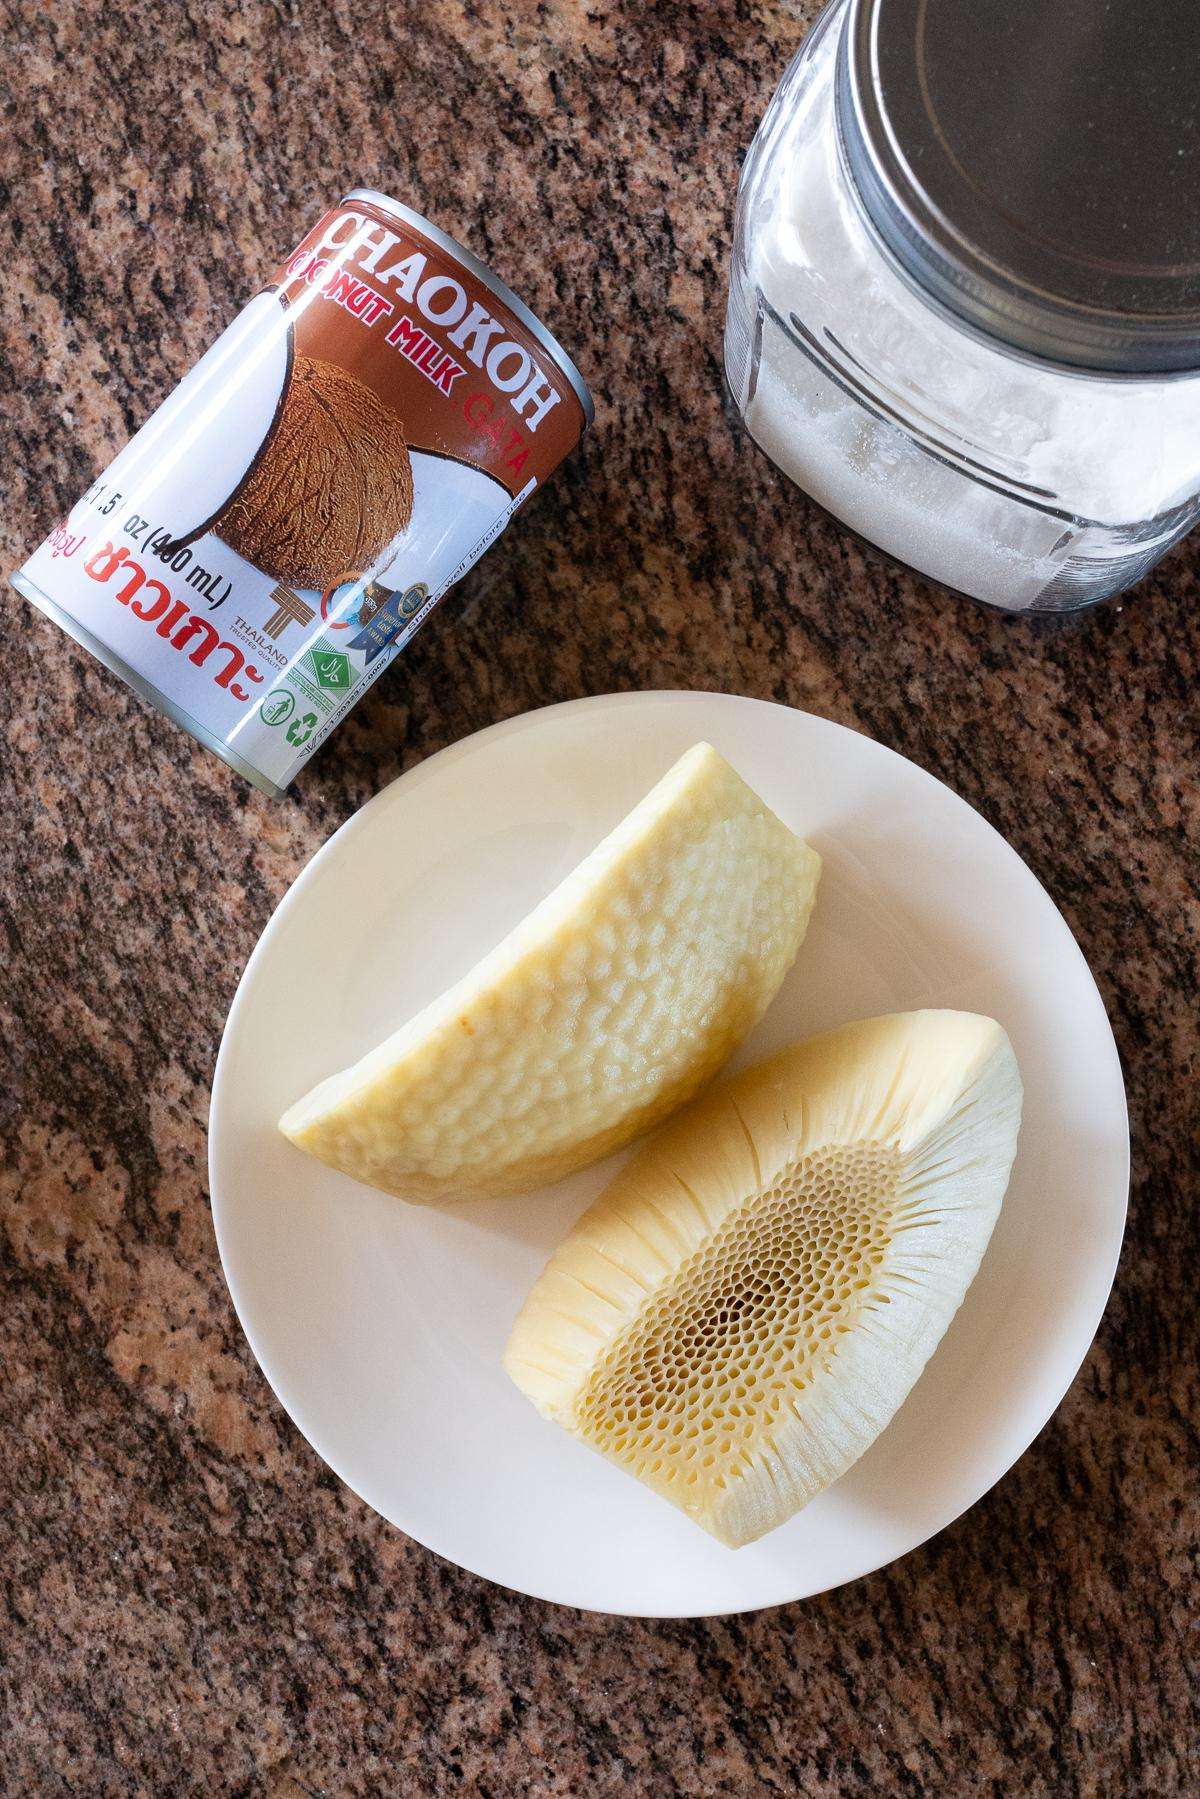 Ingredients for Breadfruit (Ulu) with Coconut Milk: breadfruit, coconut milk, sugar, and salt.